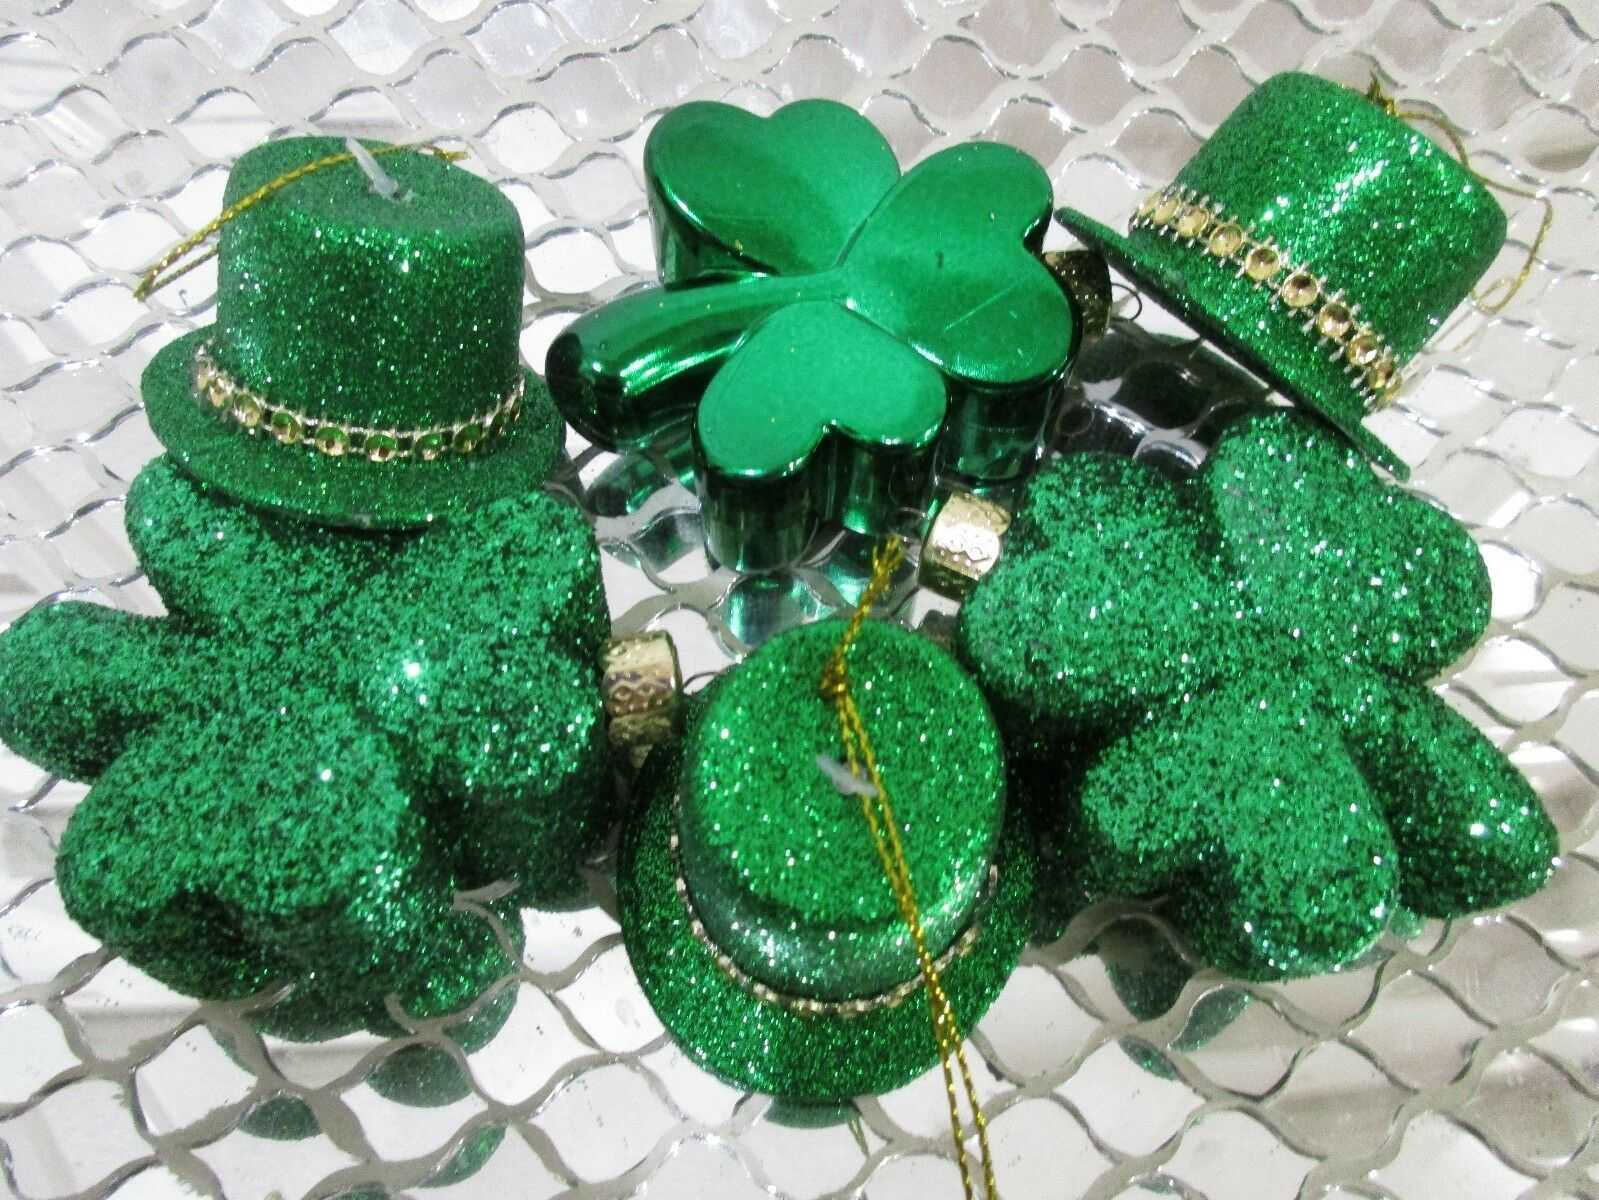 Primary image for St Patrick's Day Green Shamrocks & Hat Ornaments Decorations Decor Set of 6